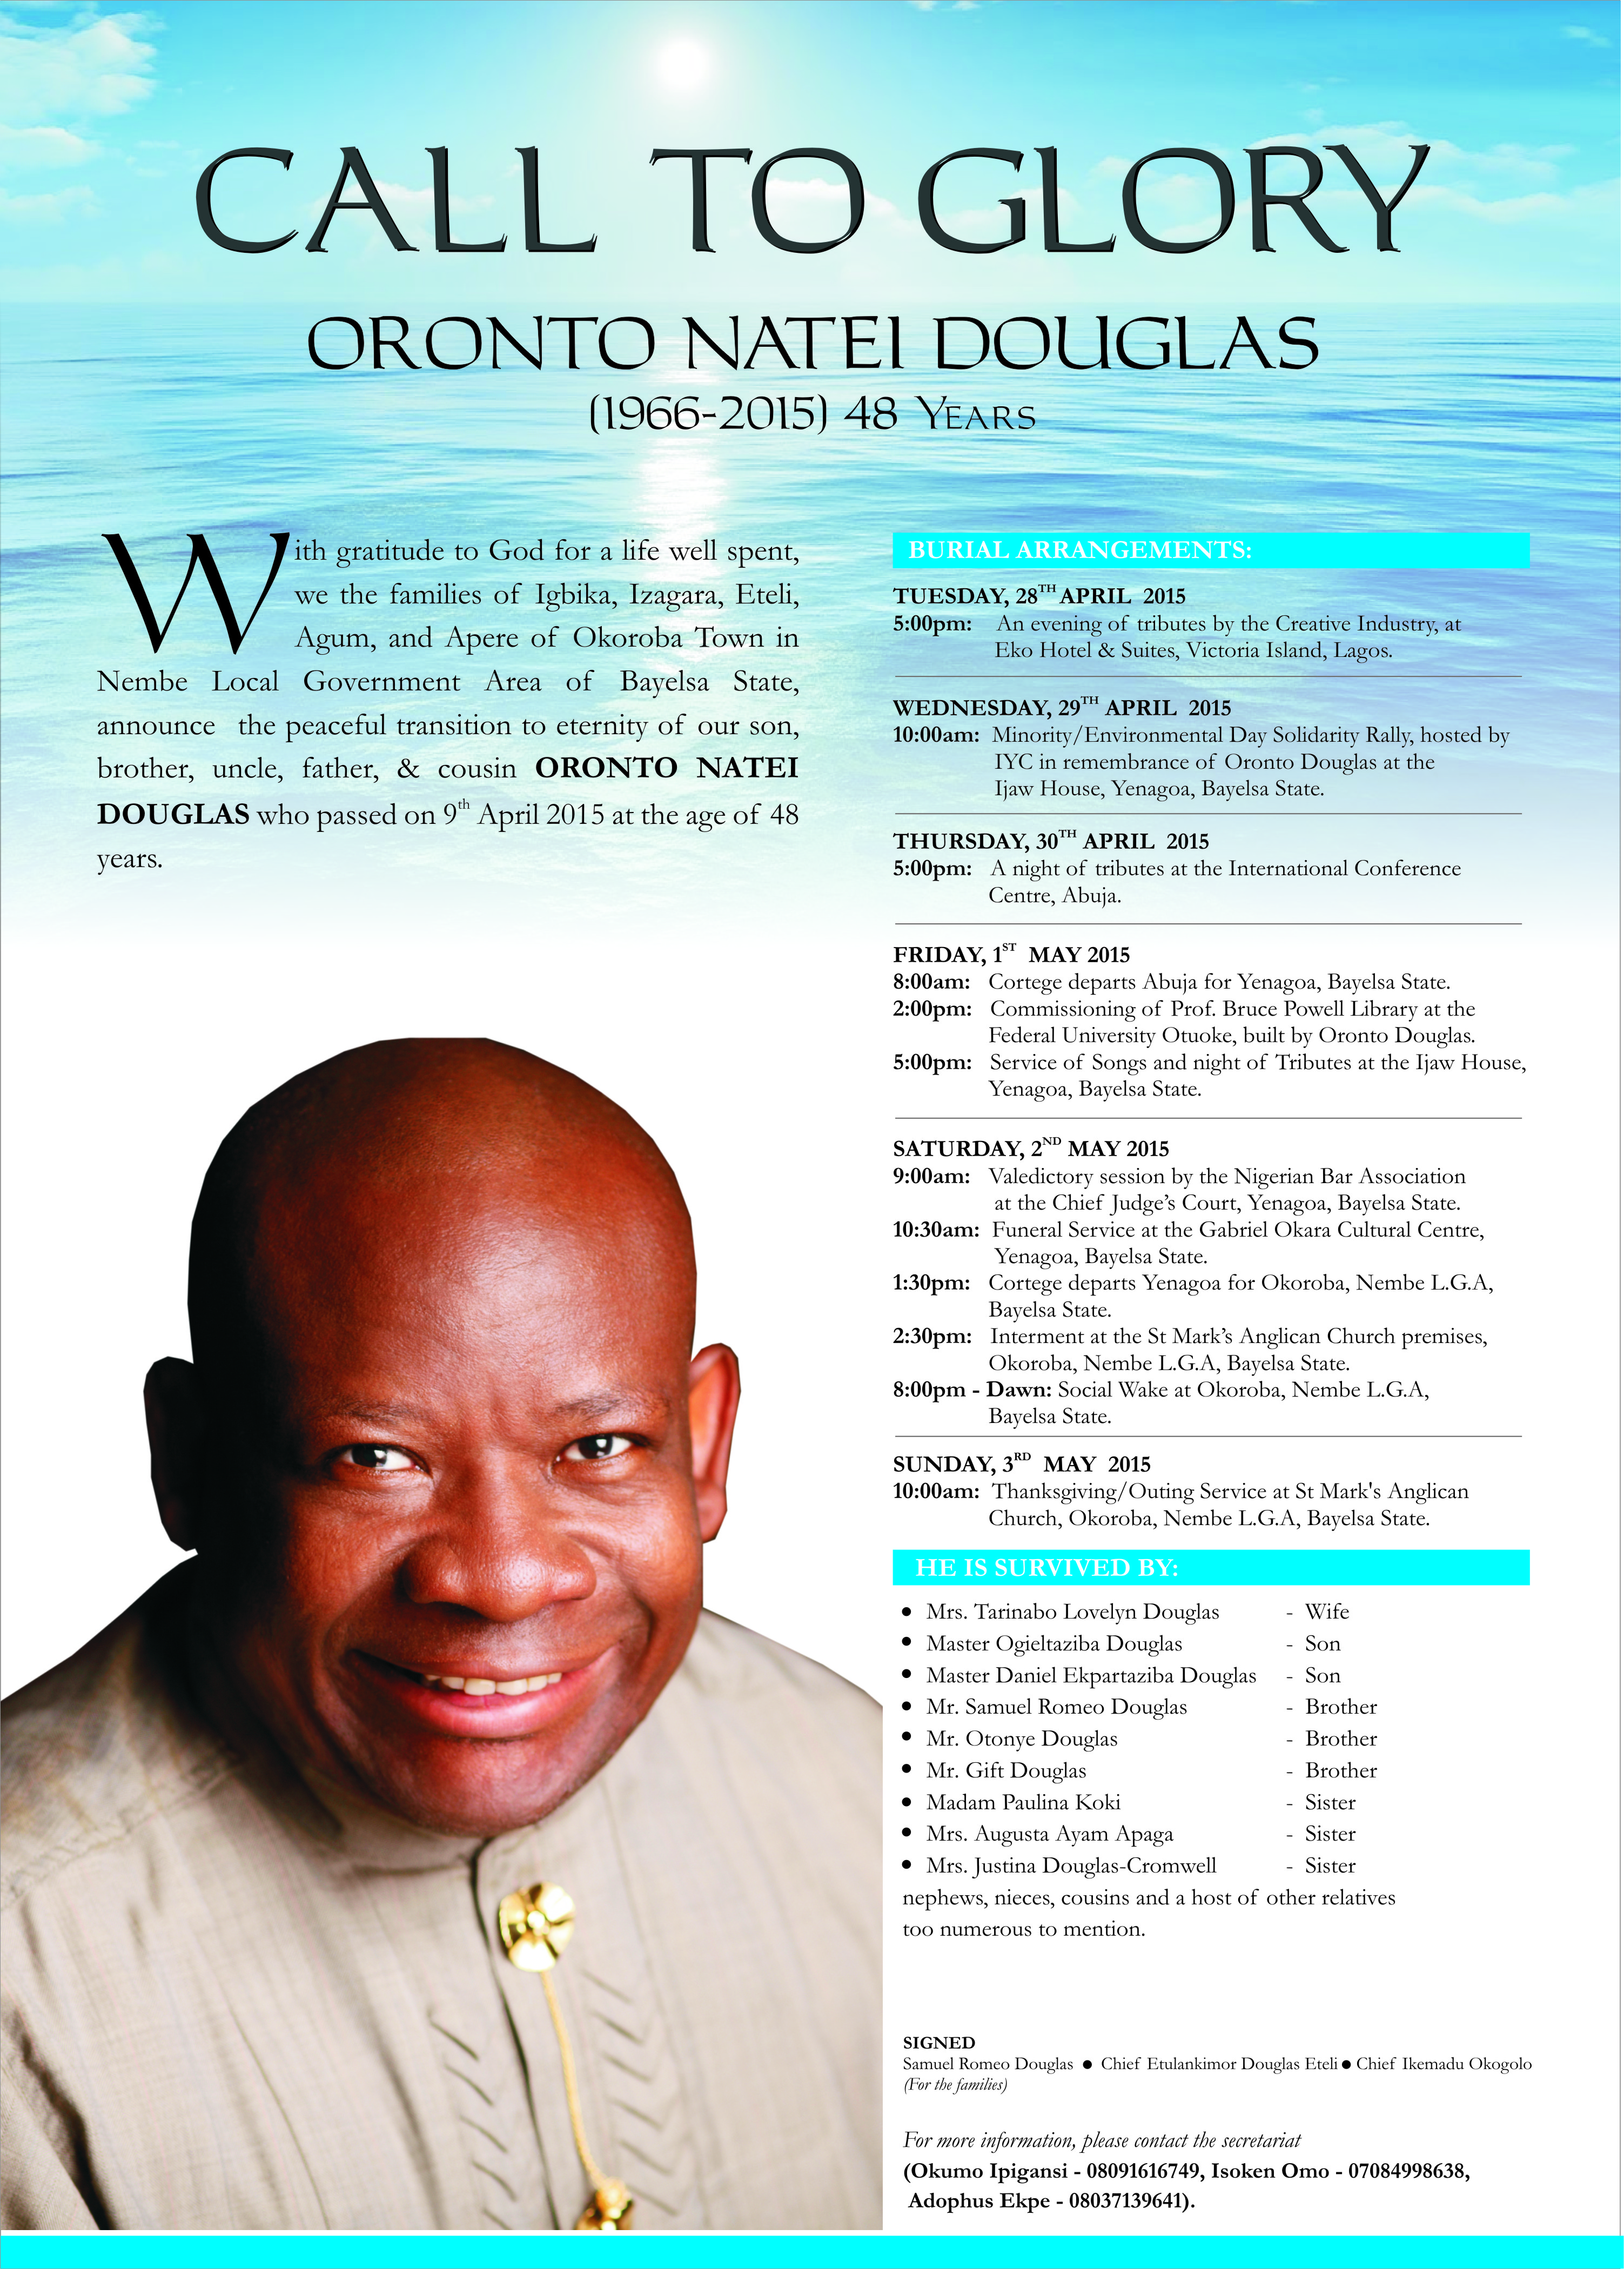 oronto douglas to be buried in bayelsa the riverine community of okoroba in nembe local government area of bayelsa state will come alive for the burial of late oronto natei douglas